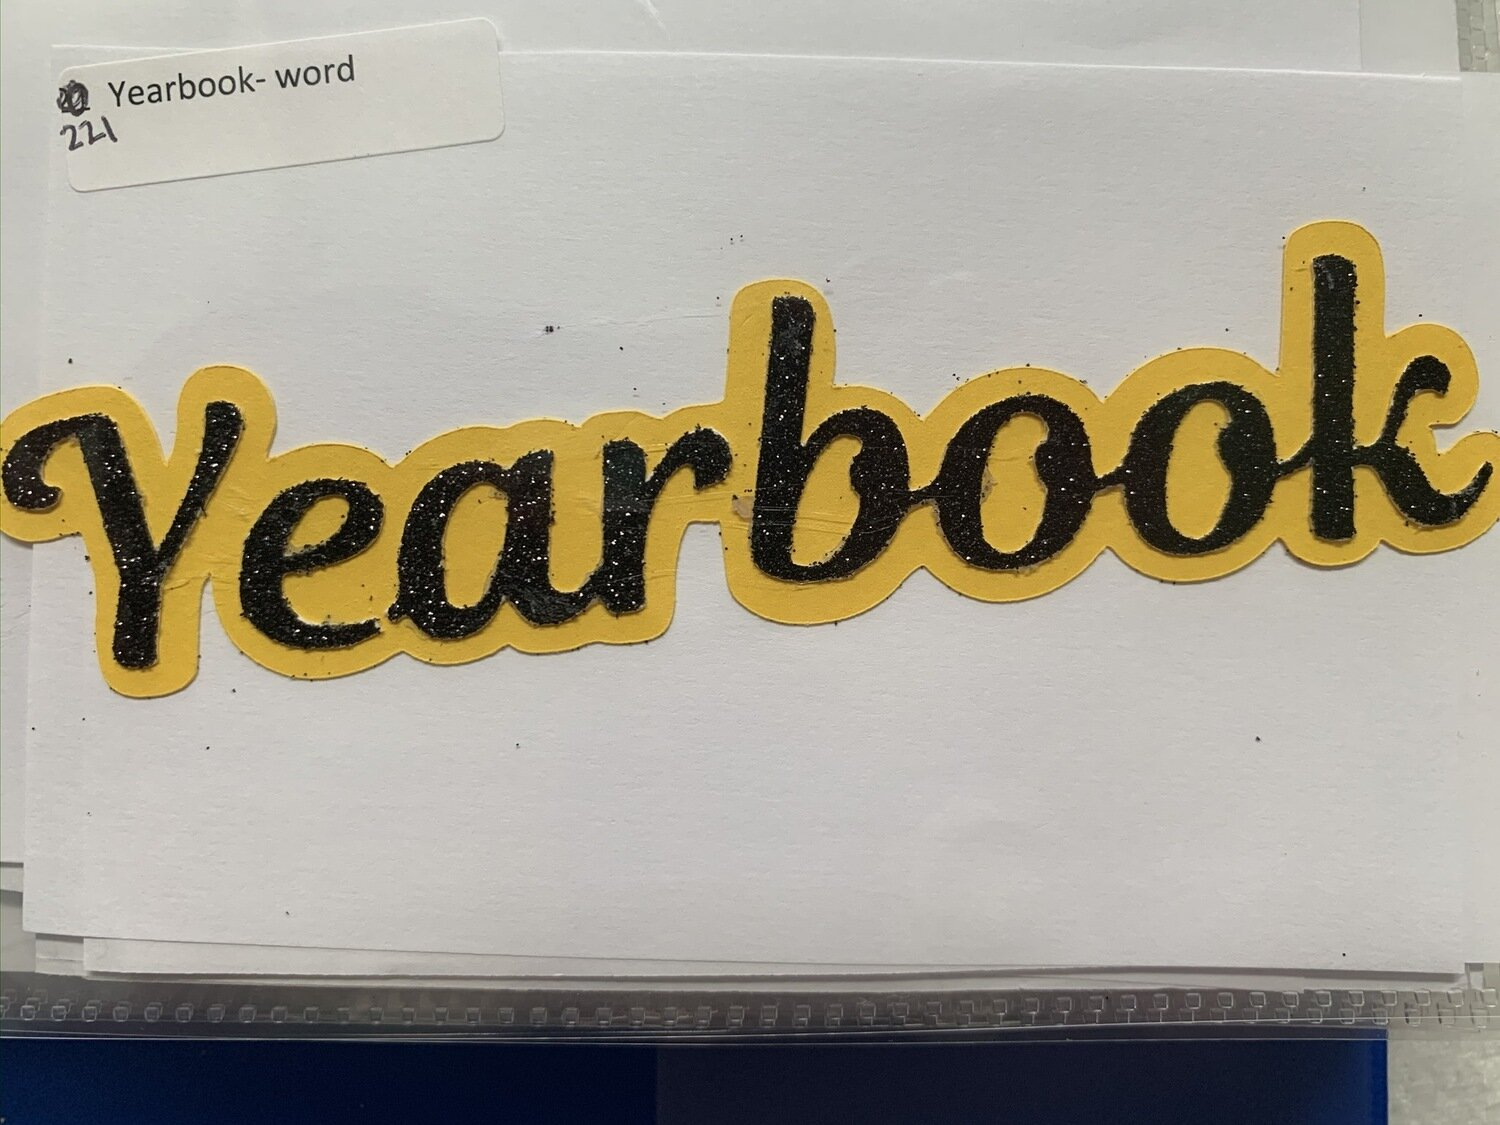 Yearbook- word